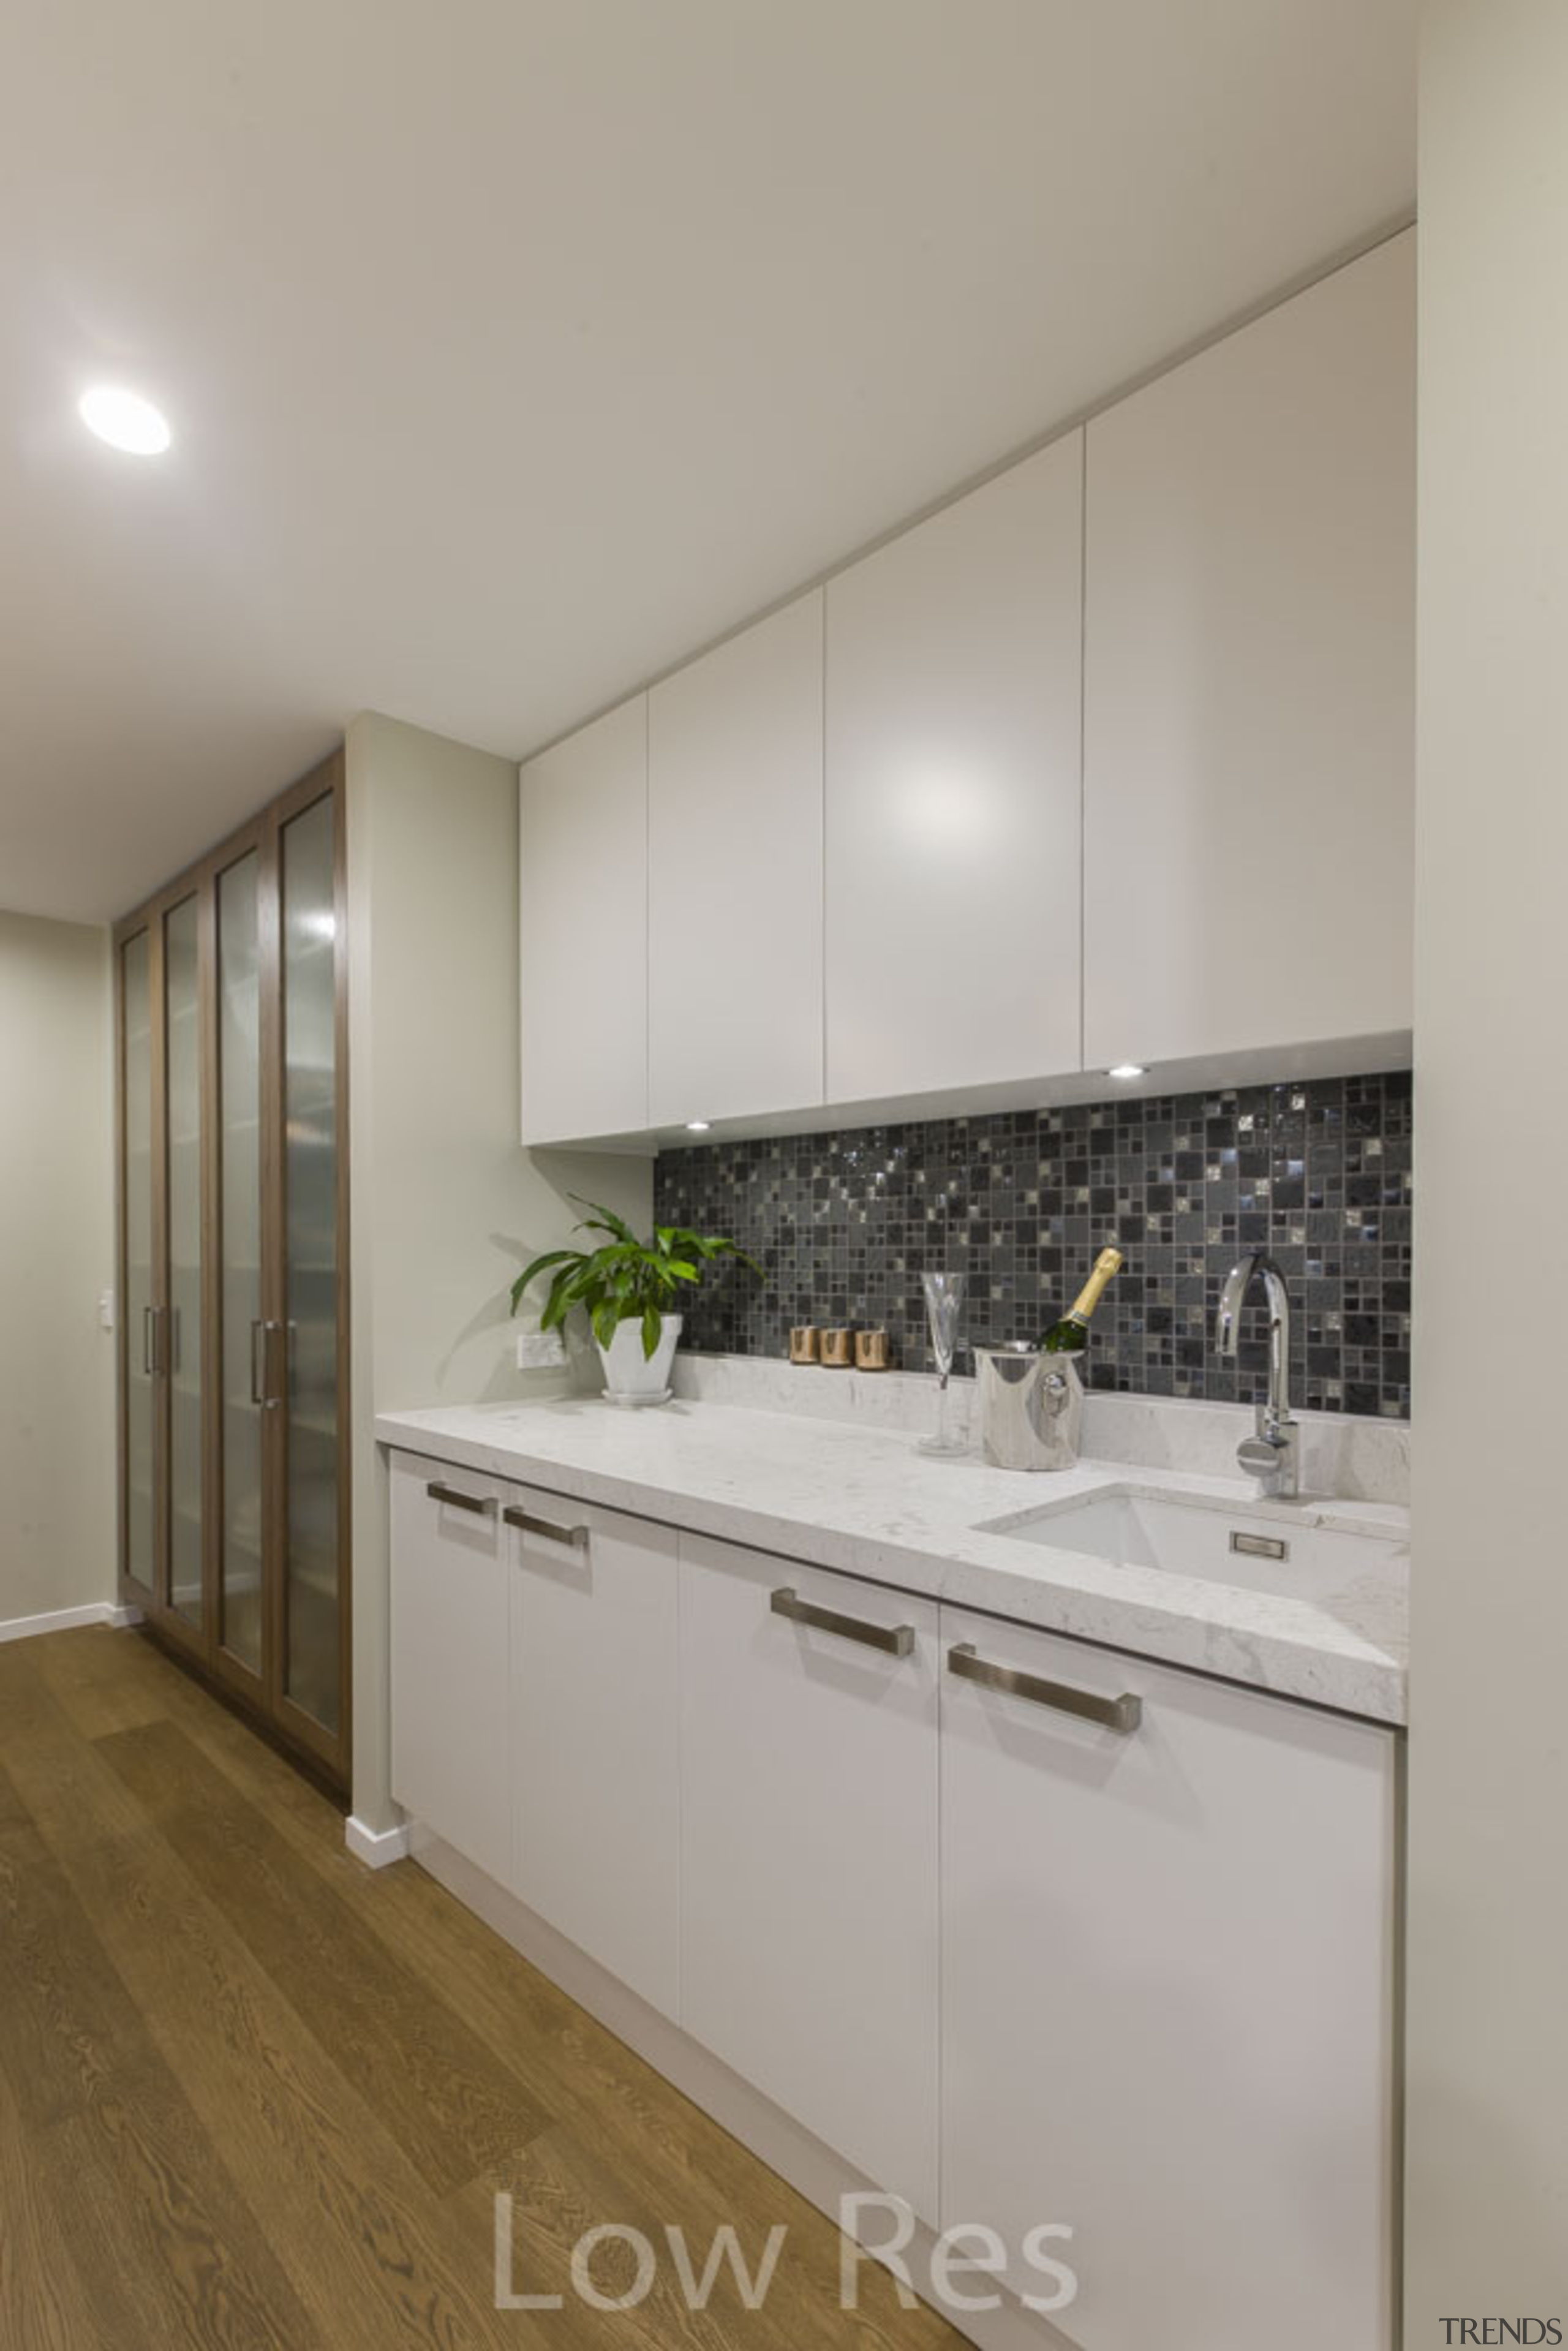 St Heliers III - cabinetry | countertop | cabinetry, countertop, interior design, kitchen, property, real estate, room, gray